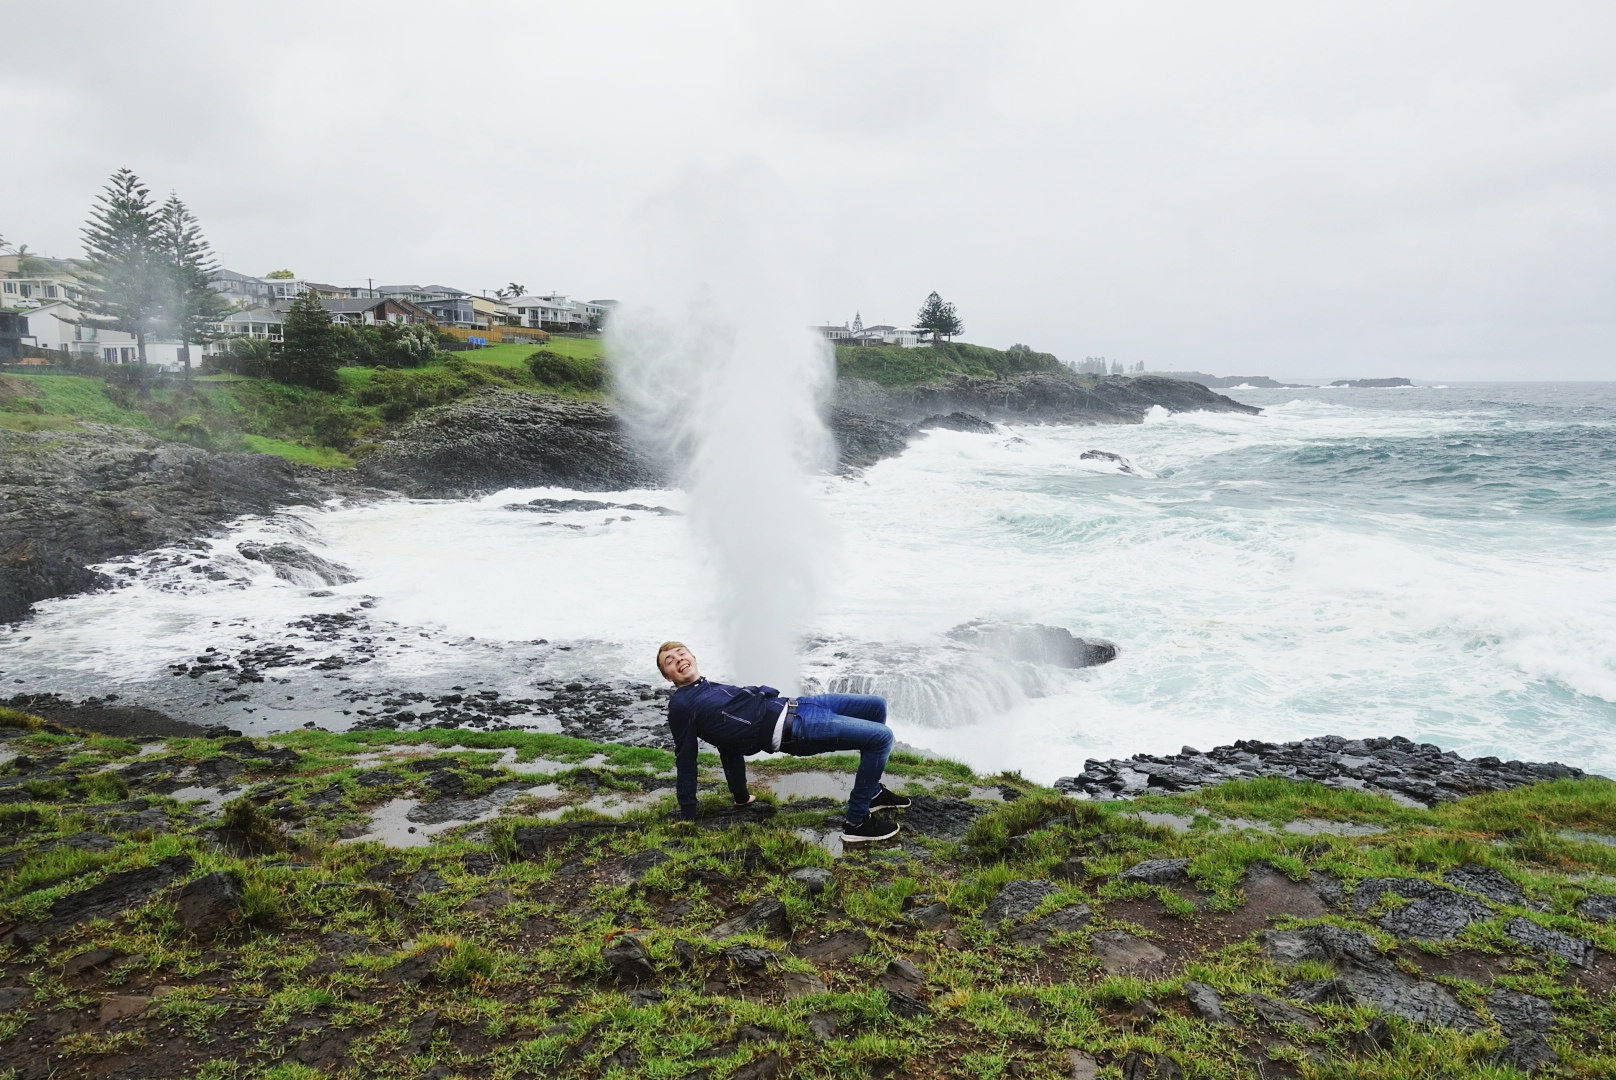 Mattias At The Little Blowhole in Kiama